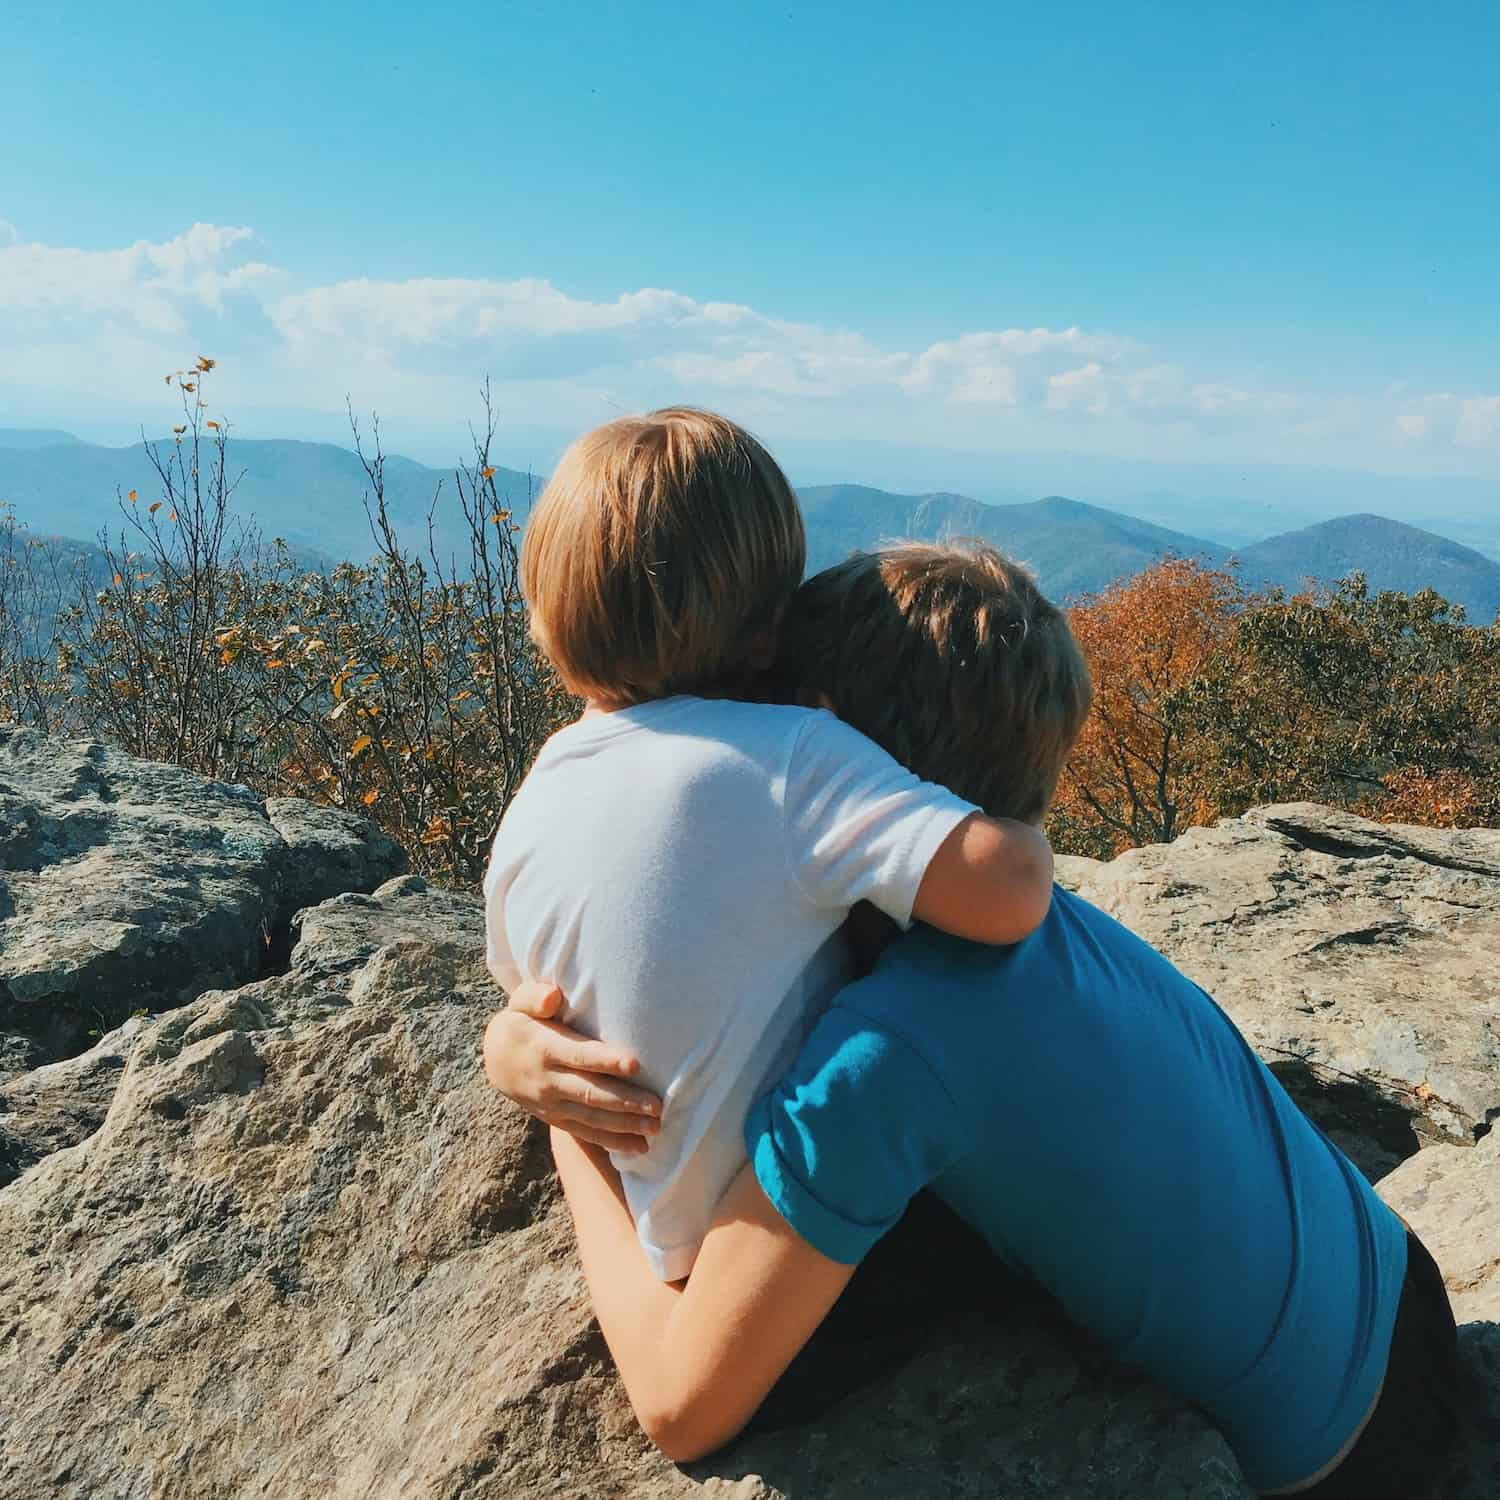 Two kids hug while looking at nature